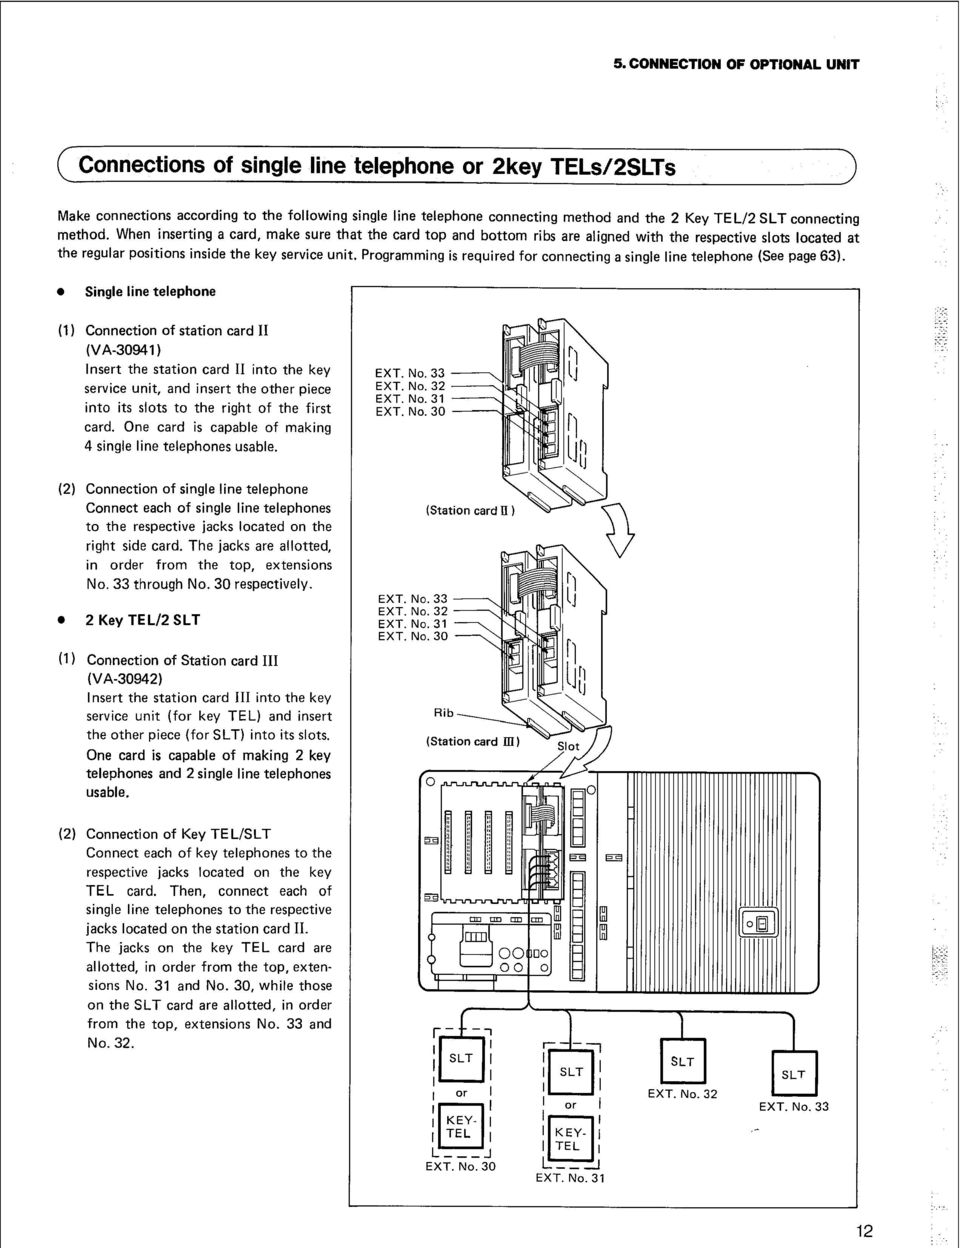 Programming is required for connecting a single fine telephone (See page 63).